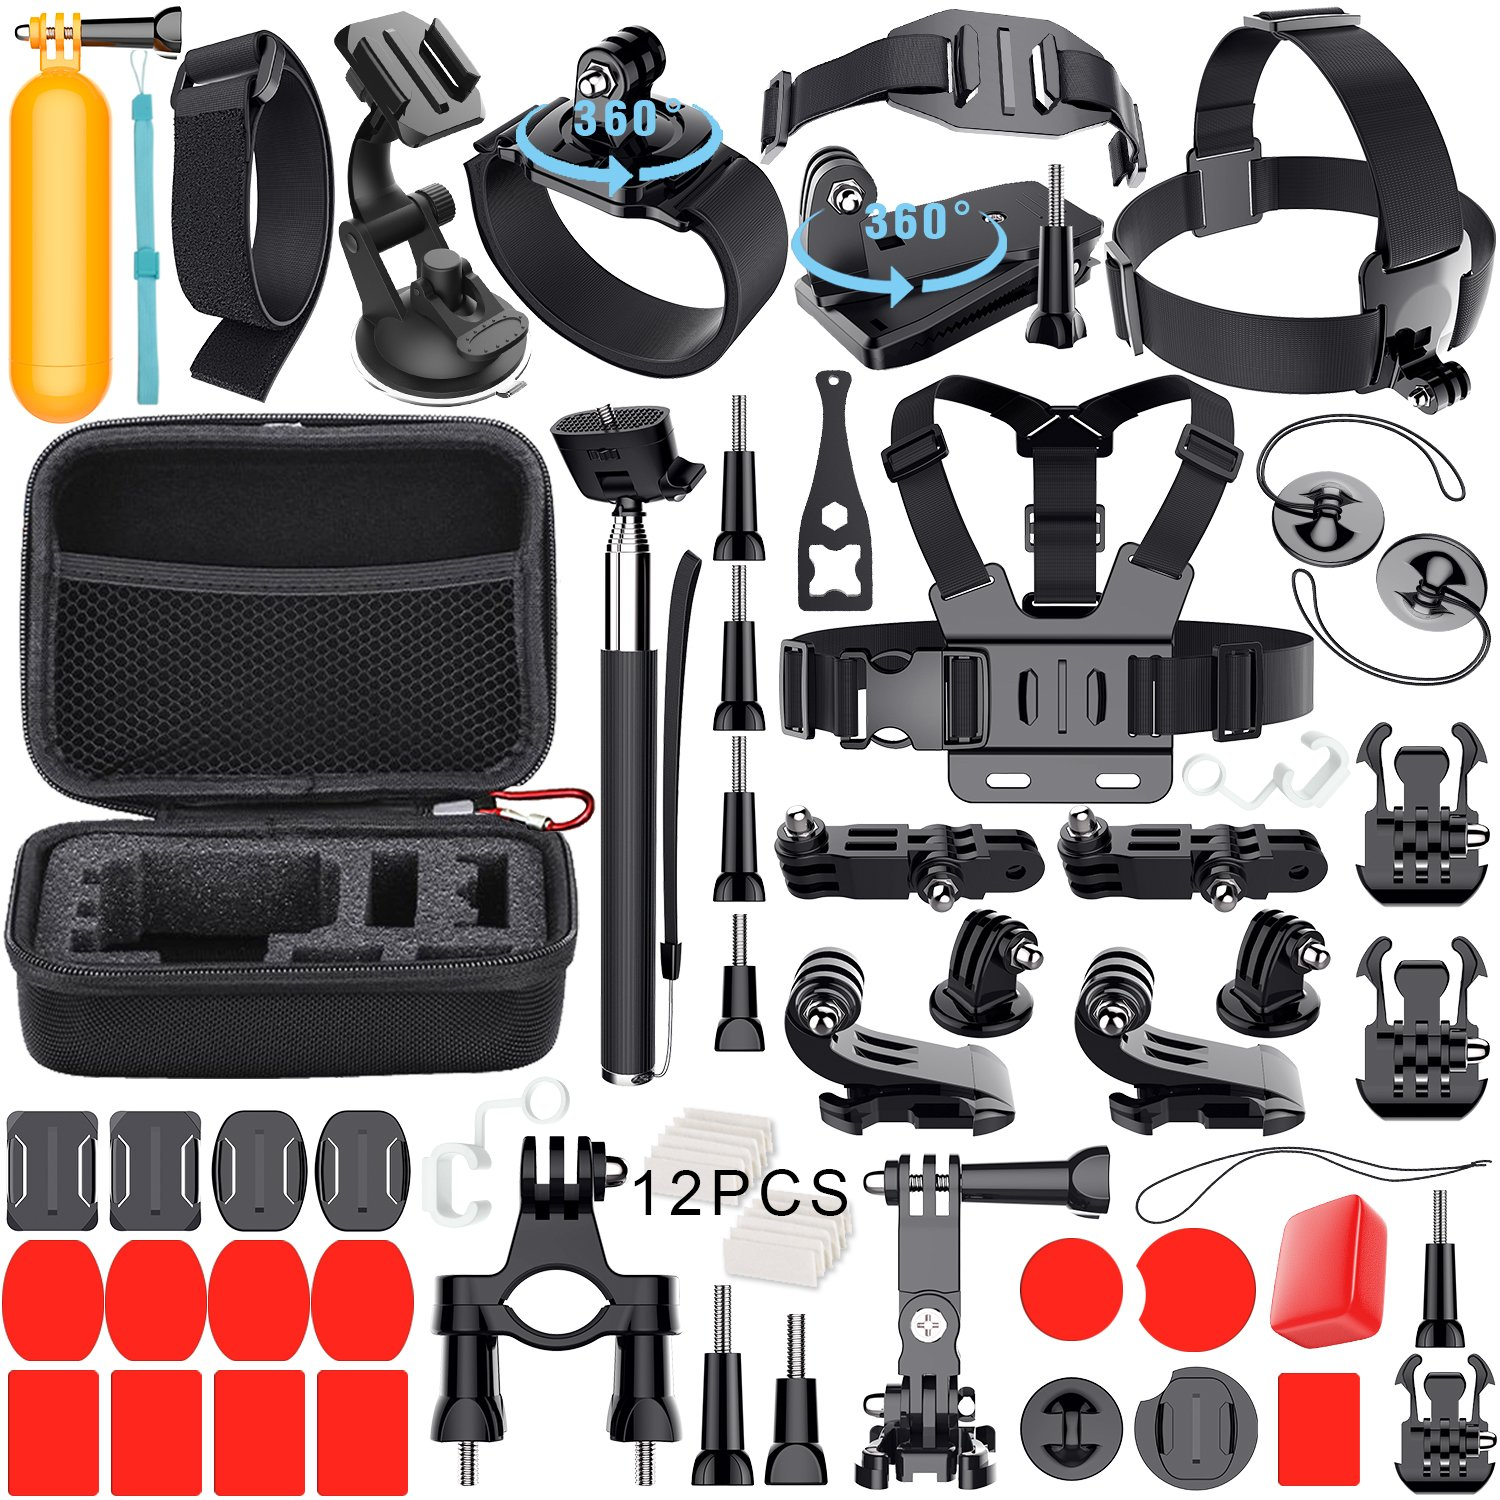 Leknes Common Outdoor Sports Bundle for SJ4000/SJ5000/SJ6000 and GoPro Hero 5/ 5 Session/4/3+/3/2/1 Cameras DBpower Akaso Xiaomi Yi Apeman Wimius by Leknes